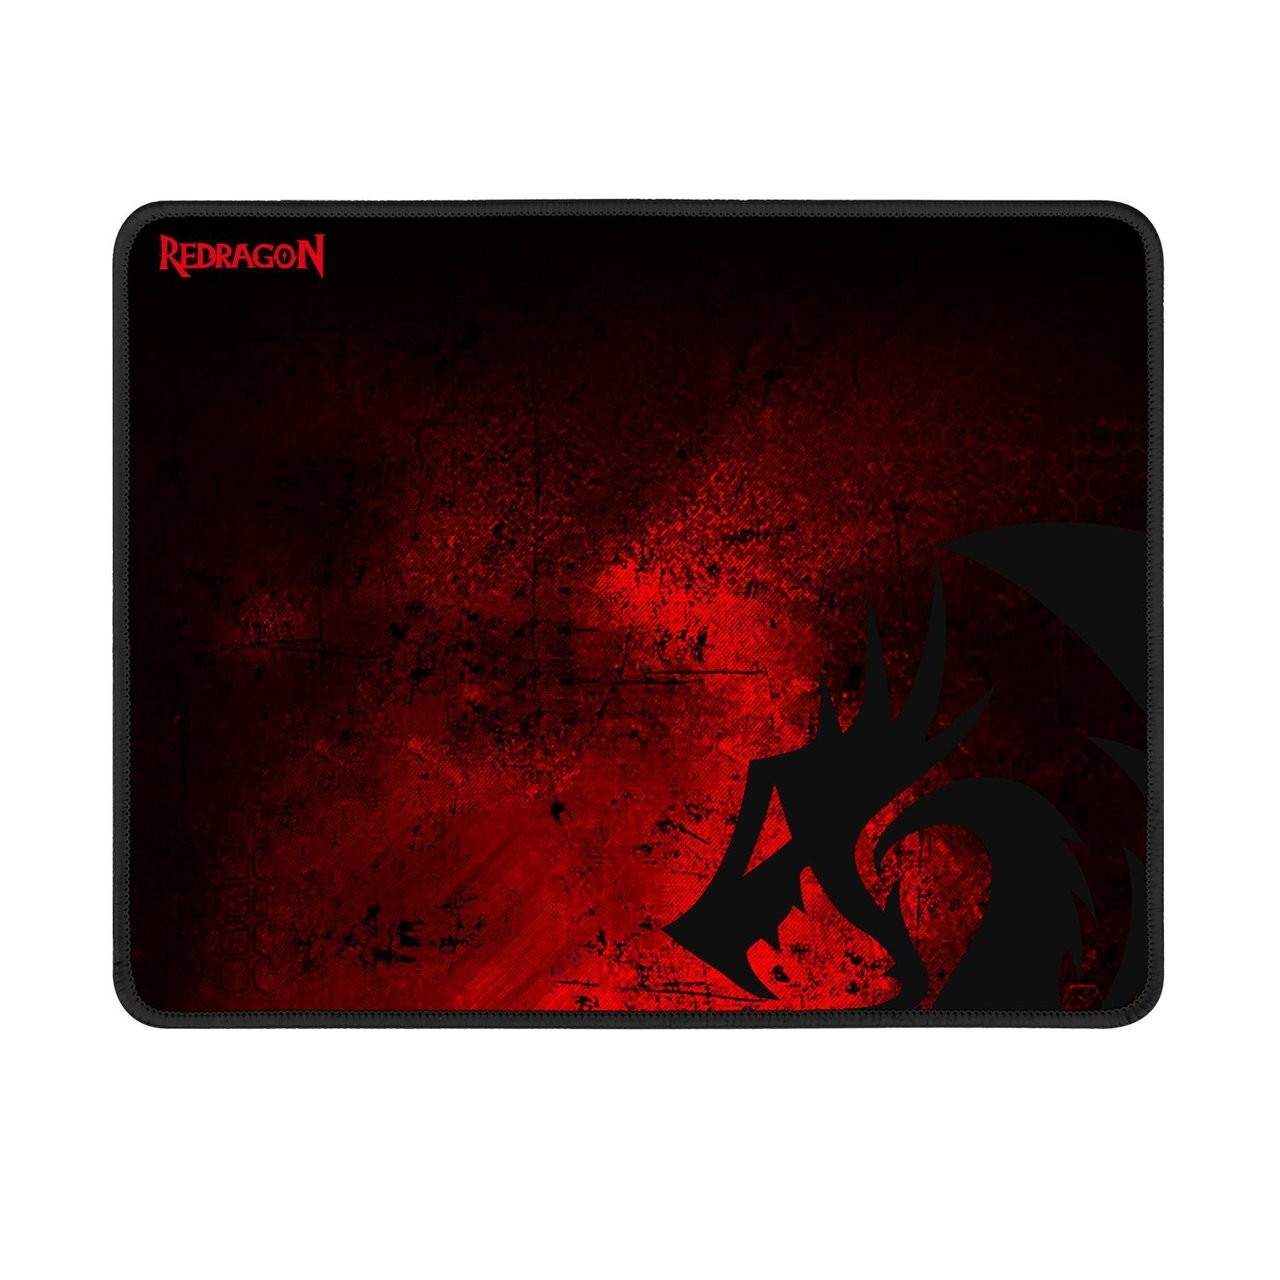 Redragon P016 Gaming Mouse Pad, Large 13 x 10.2 x 0.1 Inches, Stitched Edges, Waterproof, Black Red Dragon Design, Pixel-Perfect Accuracy Optimized for All MMO Computer Mouse Sensitivity and Sensors